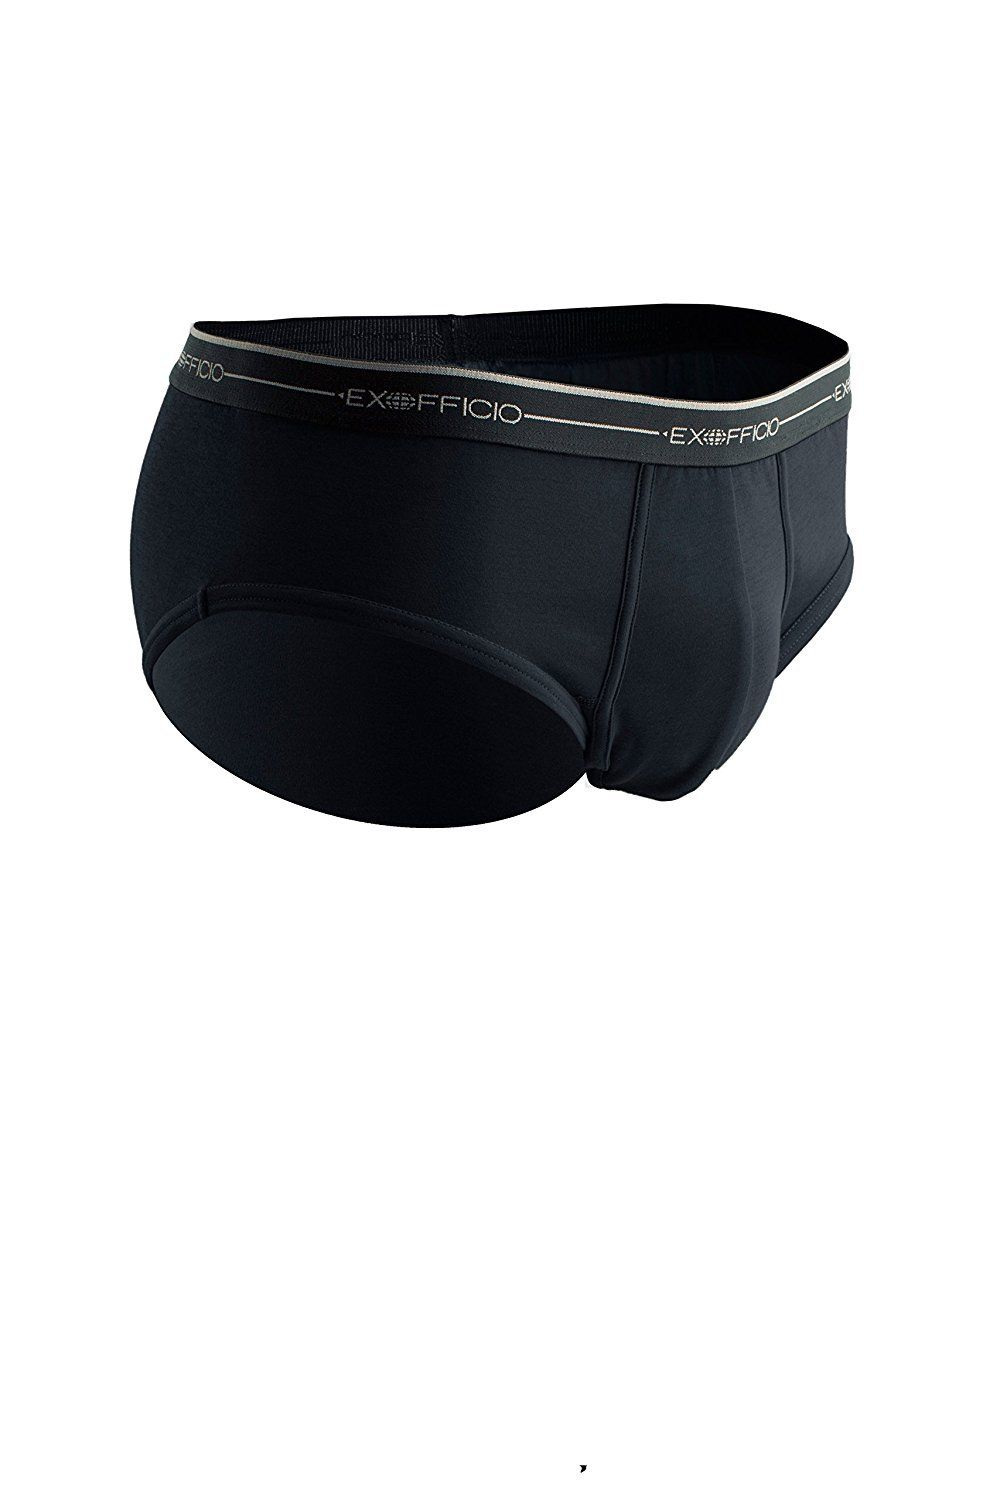 ExOfficio Men's Sol Cool Briefs 1241-2890-Small-Black by ExOfficio